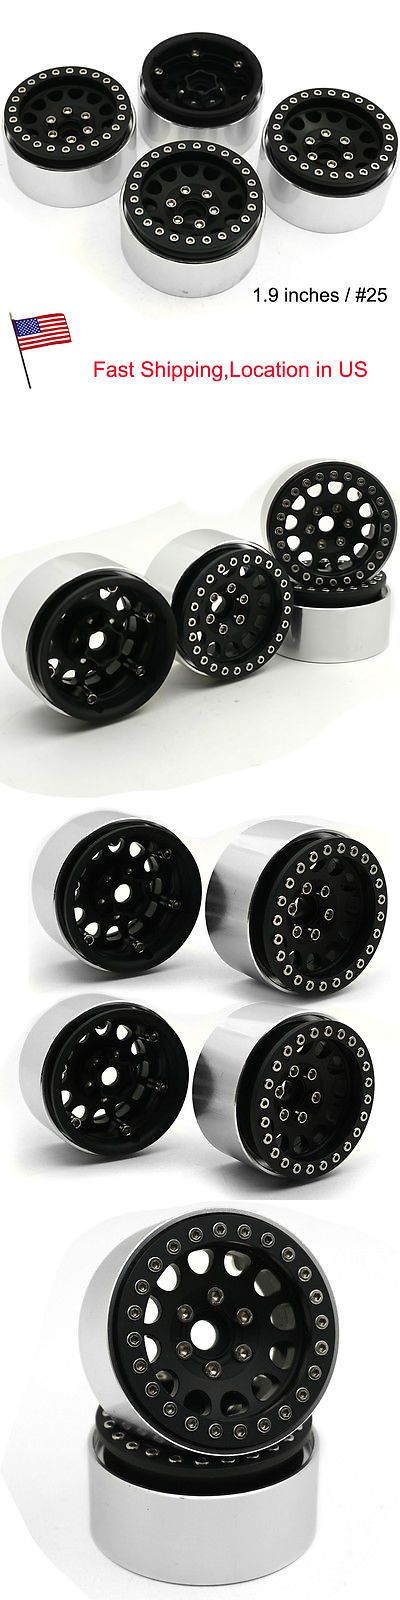 Wheels Tires Rims and Hubs 182201: 4Pcs 1.9 Alloy Beadlock Wheel Rims For Axial Scx10 D90 Cc01 1 10 Rc Crawler Us -> BUY IT NOW ONLY: $55.1 on eBay!